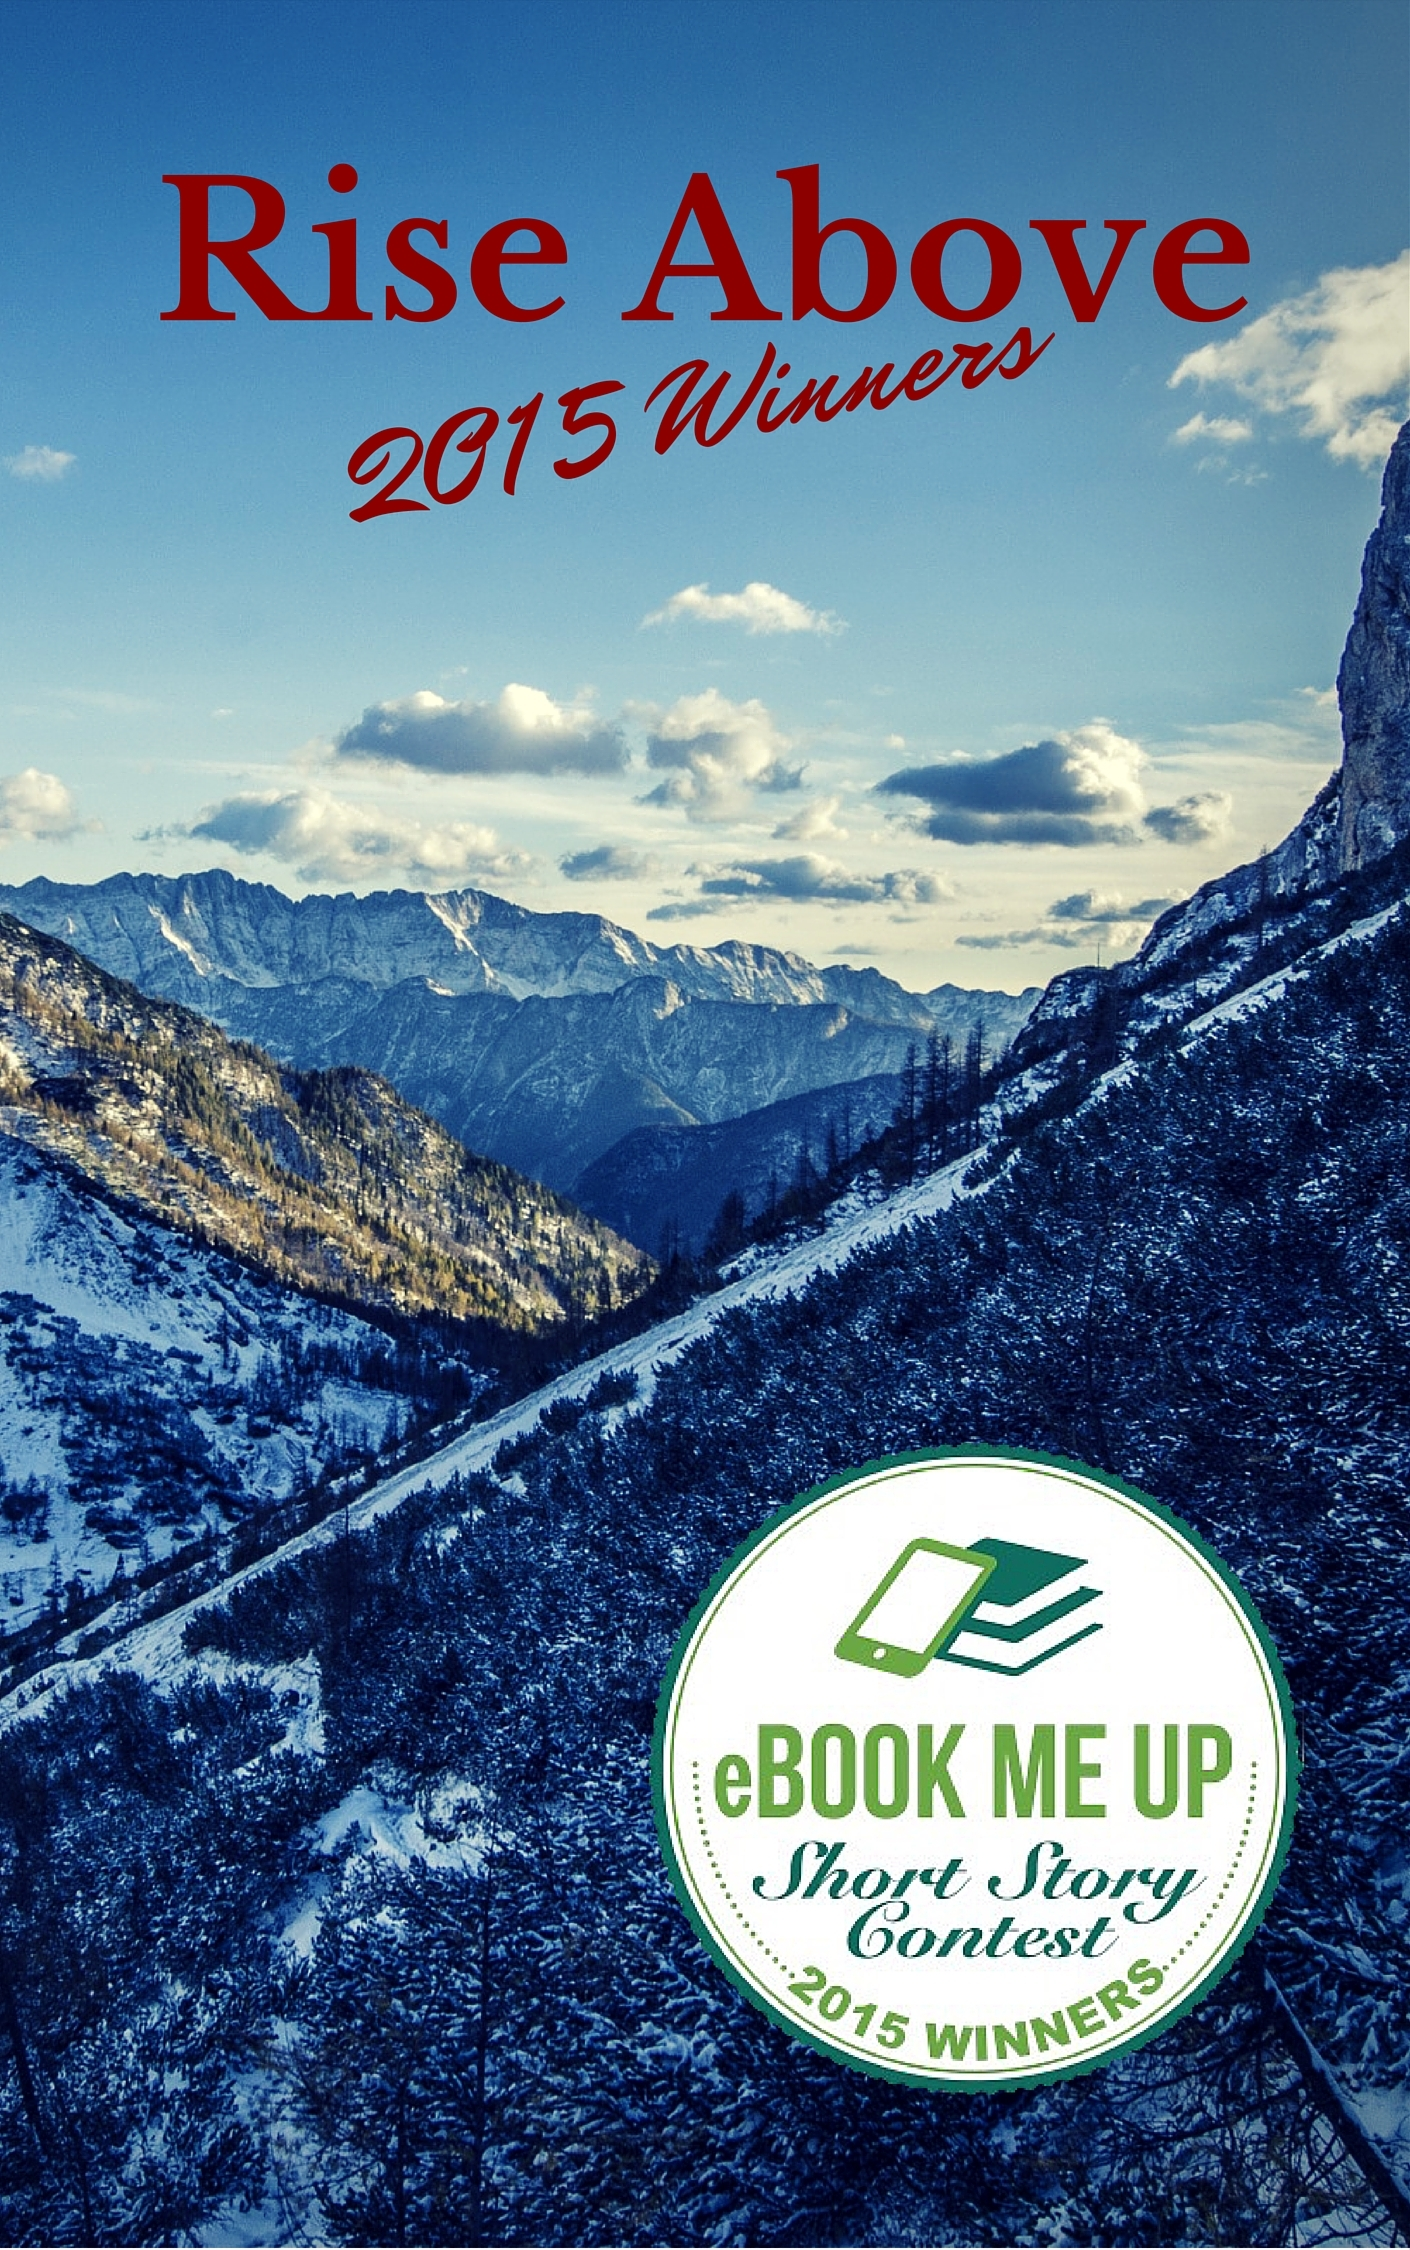 Rise Above: eBook Me Up Short Story 2015 Winners  by  Robert Walton